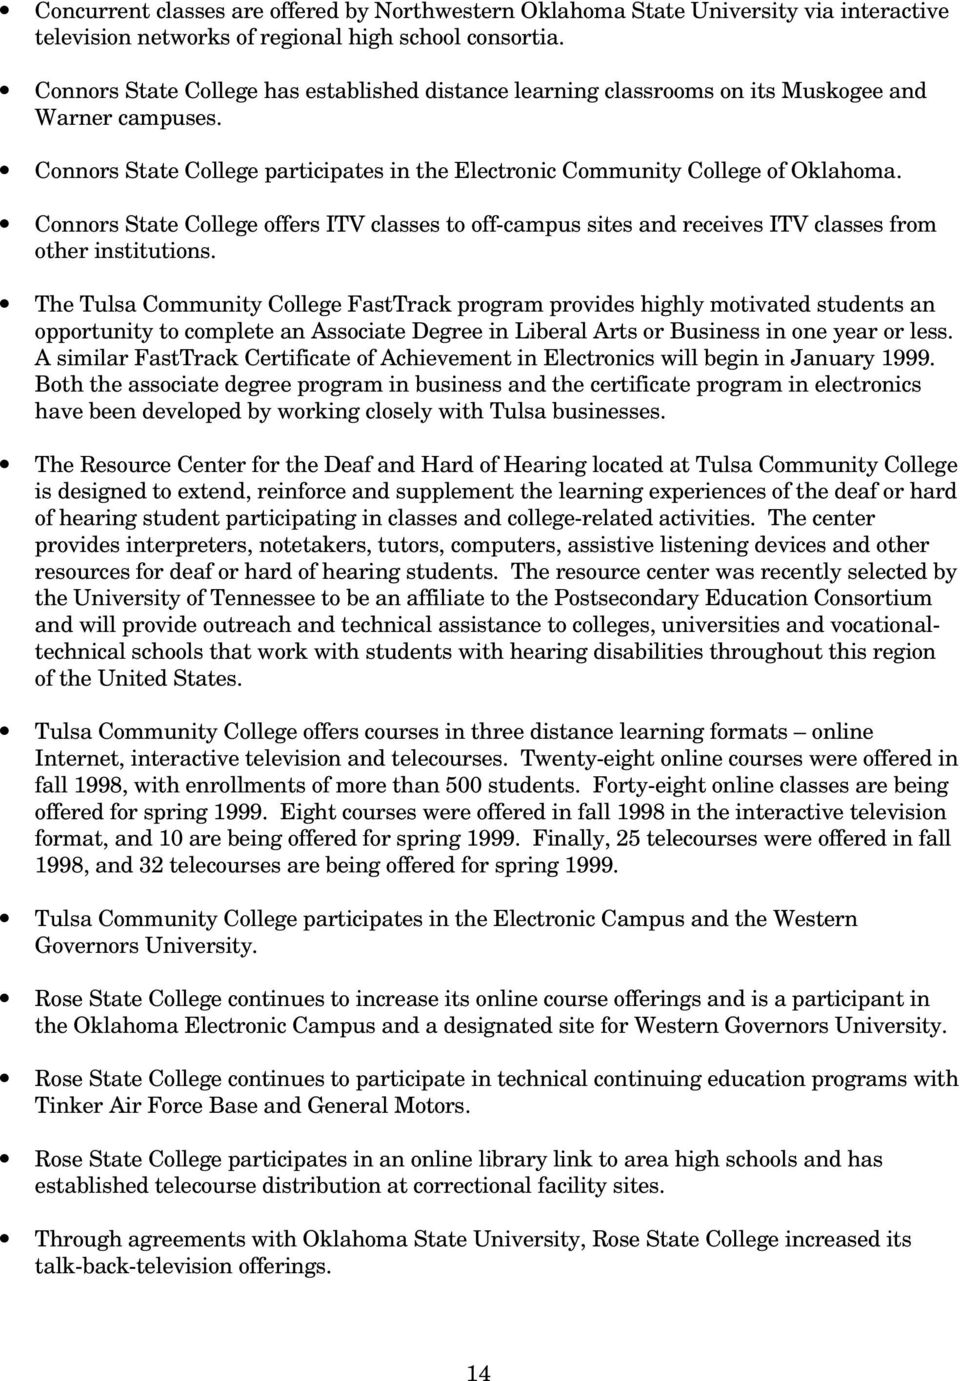 Connors State College offers ITV classes to off-campus sites and receives ITV classes from other institutions.